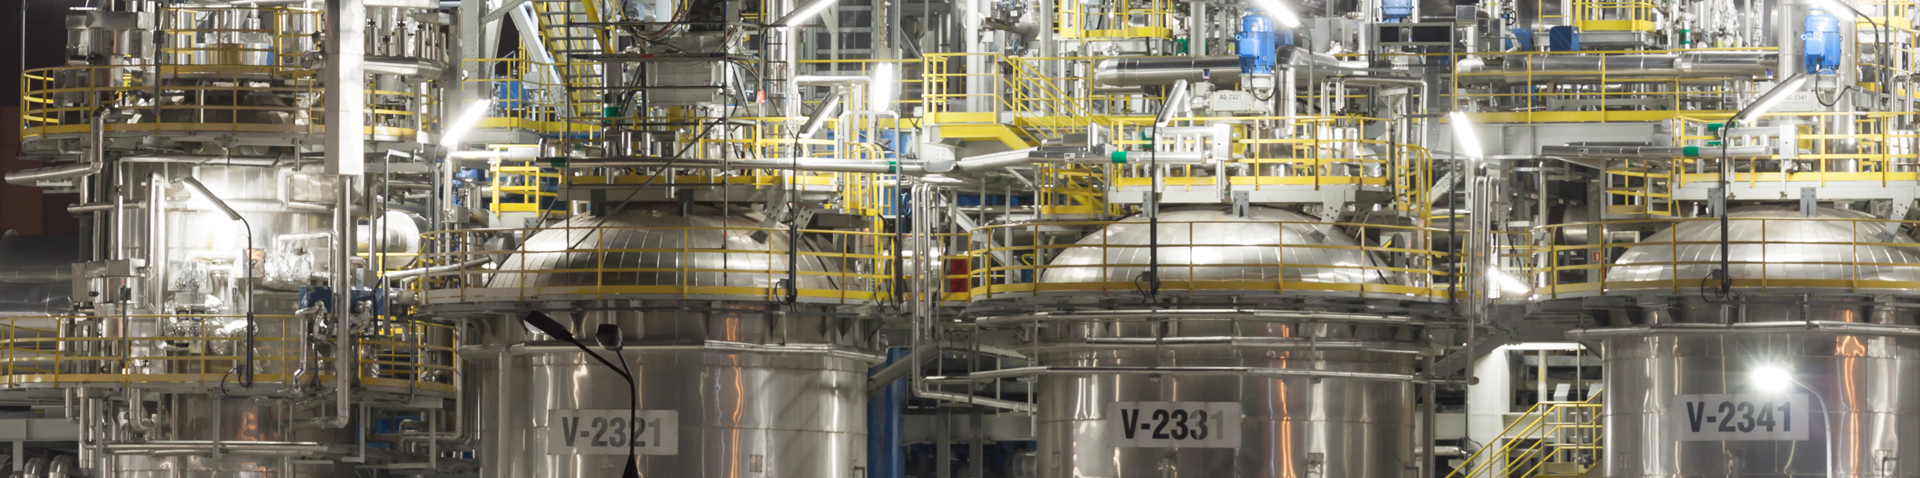 Process Equipment by Industry